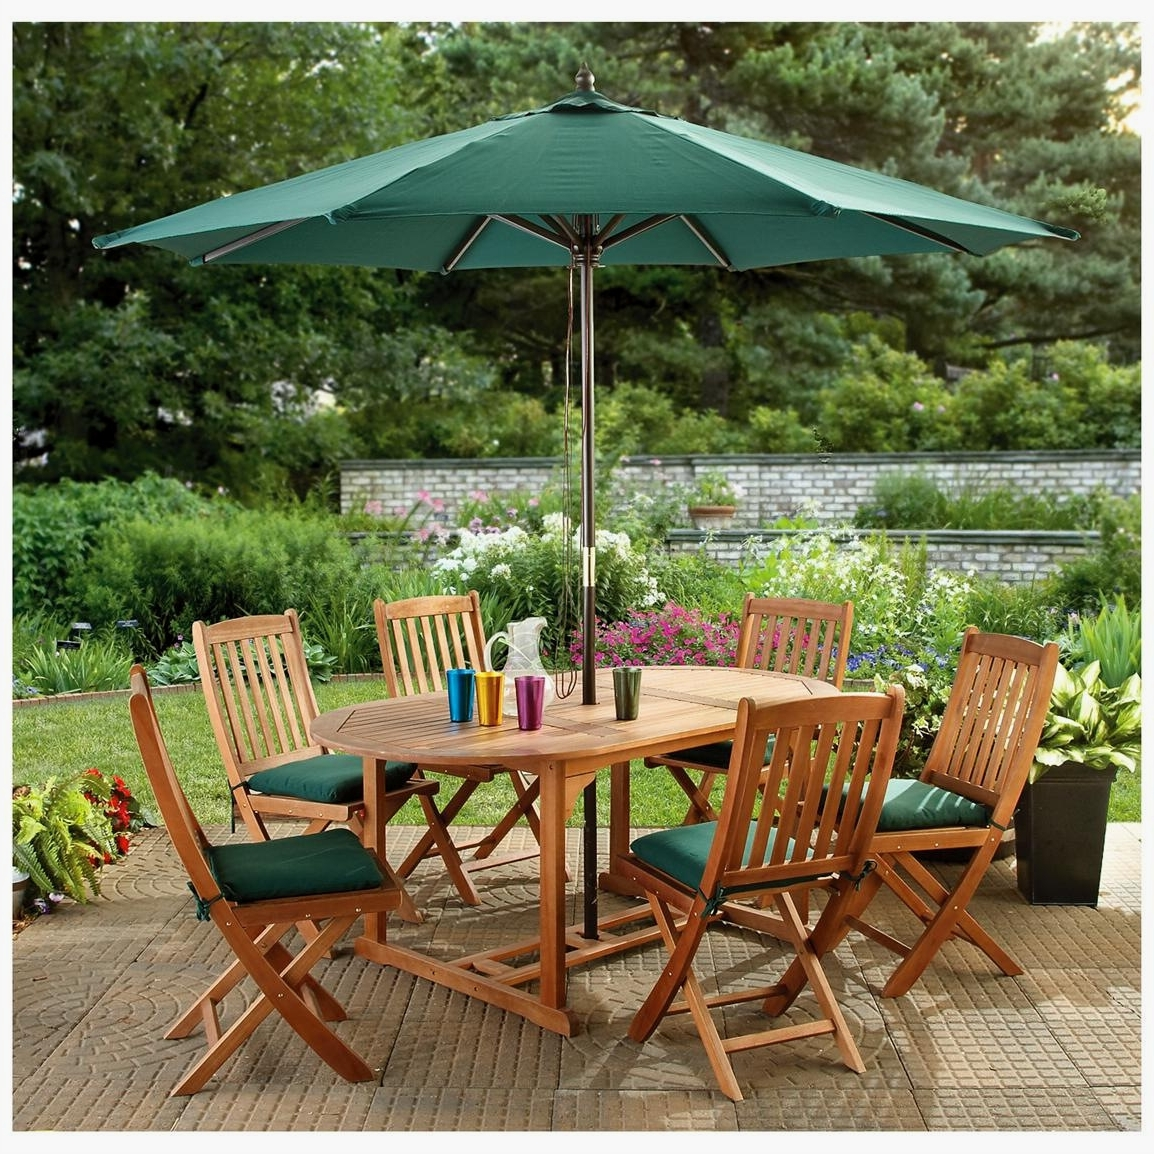 Well Liked Patio Furniture Sets With Umbrellas Inside 51 Awesome Outdoor Furniture Set With Umbrella Collection  (View 19 of 20)